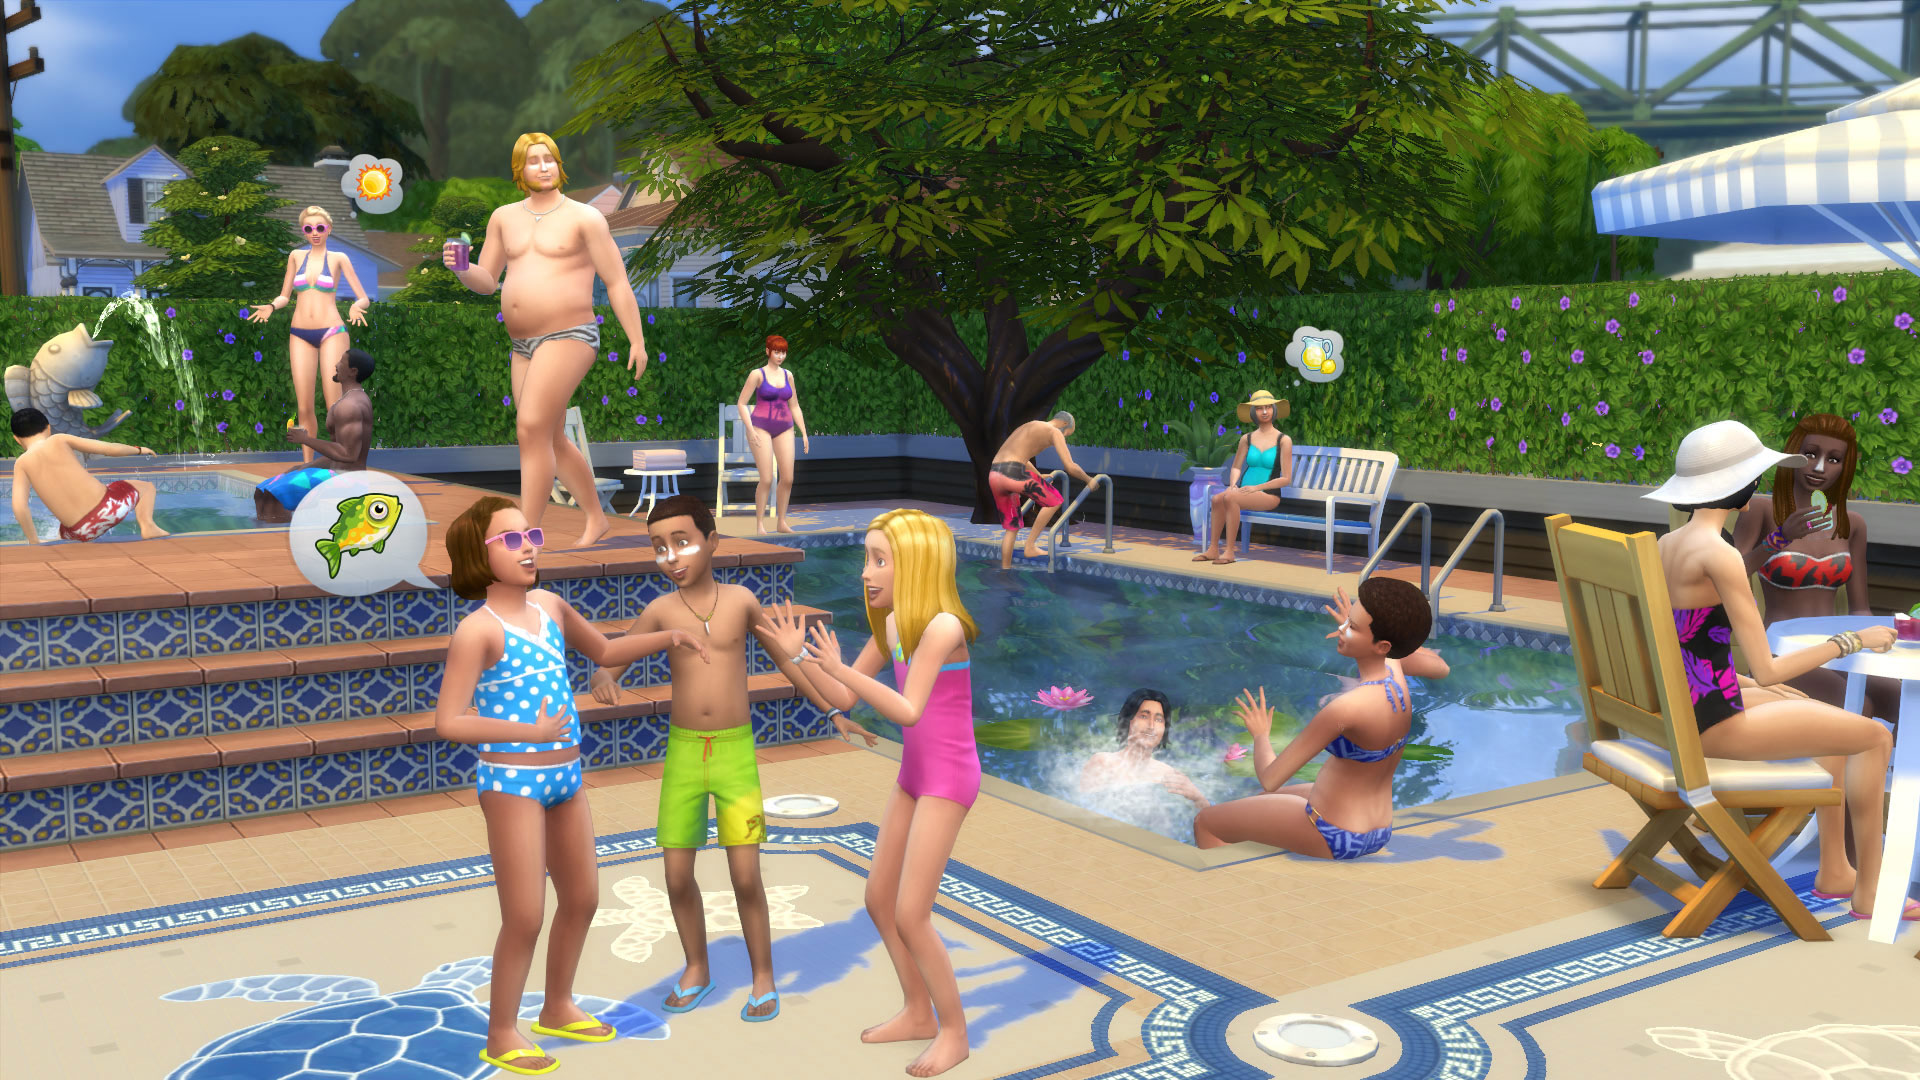 The sims 3 porno videa adult clips